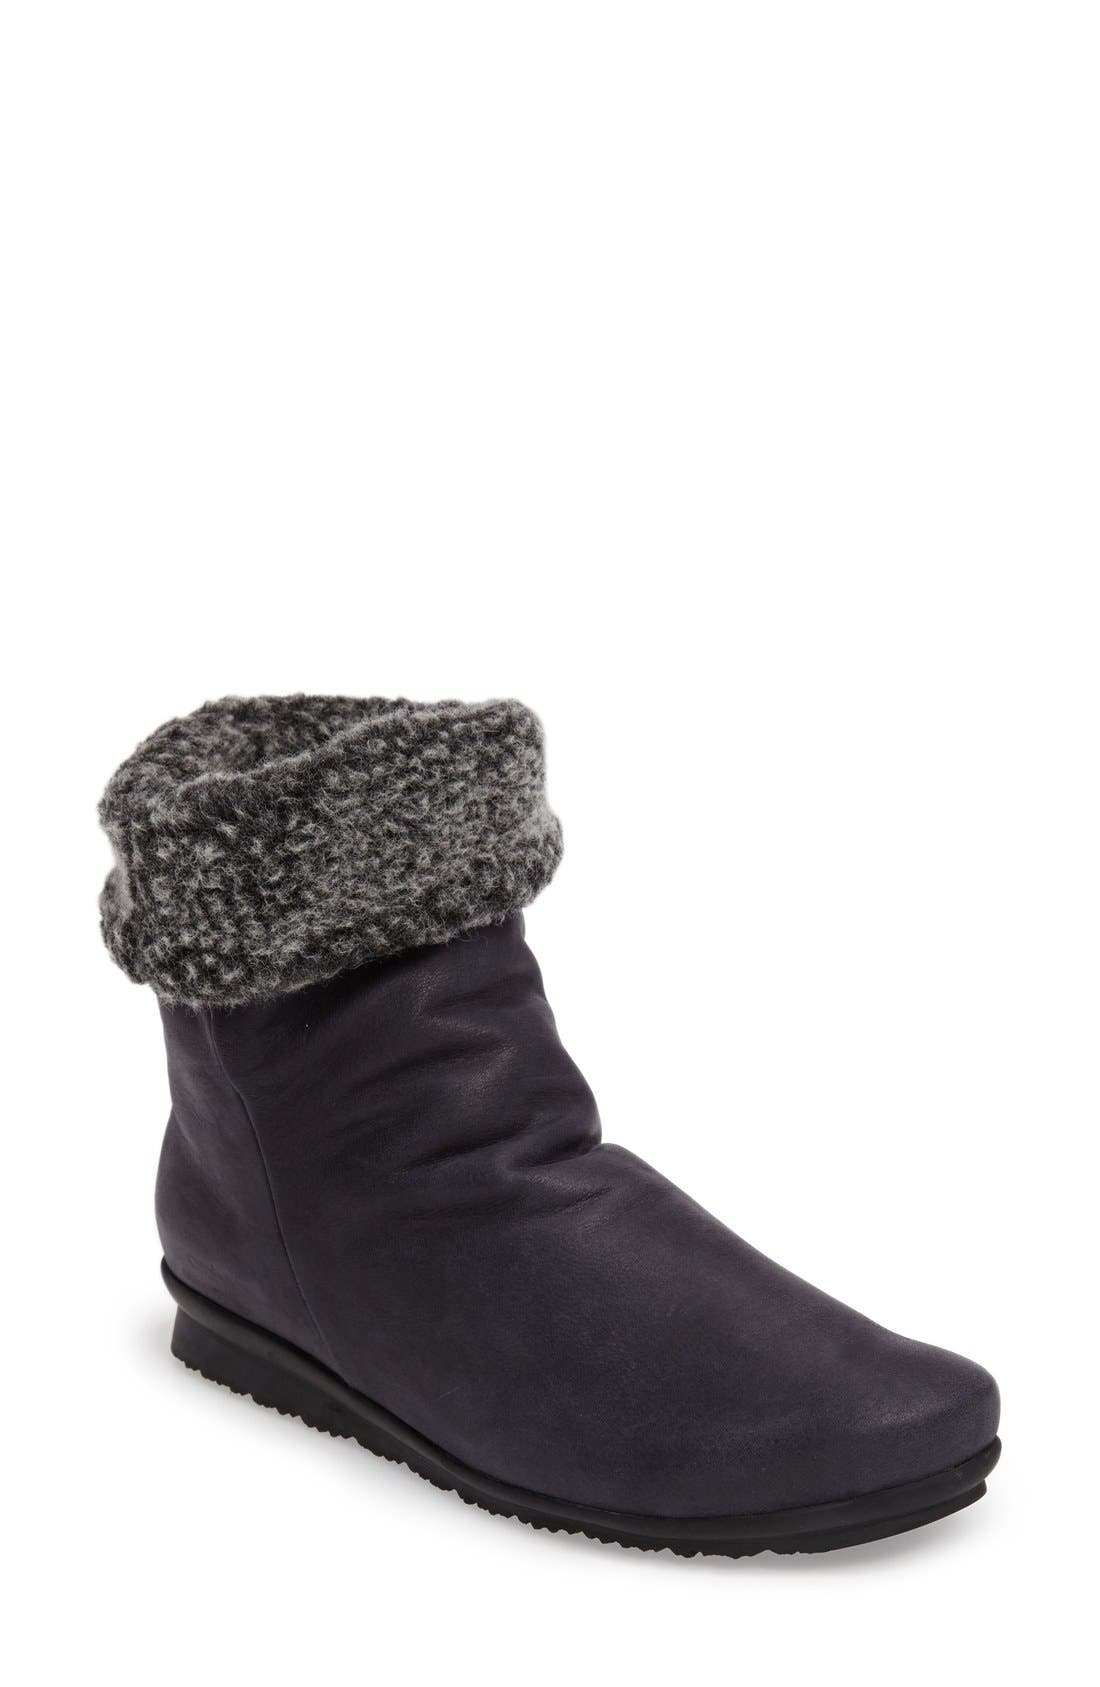 Alternate Image 1 Selected - Arche Barosa Faux Shearling Cuffed Bootie (Women)